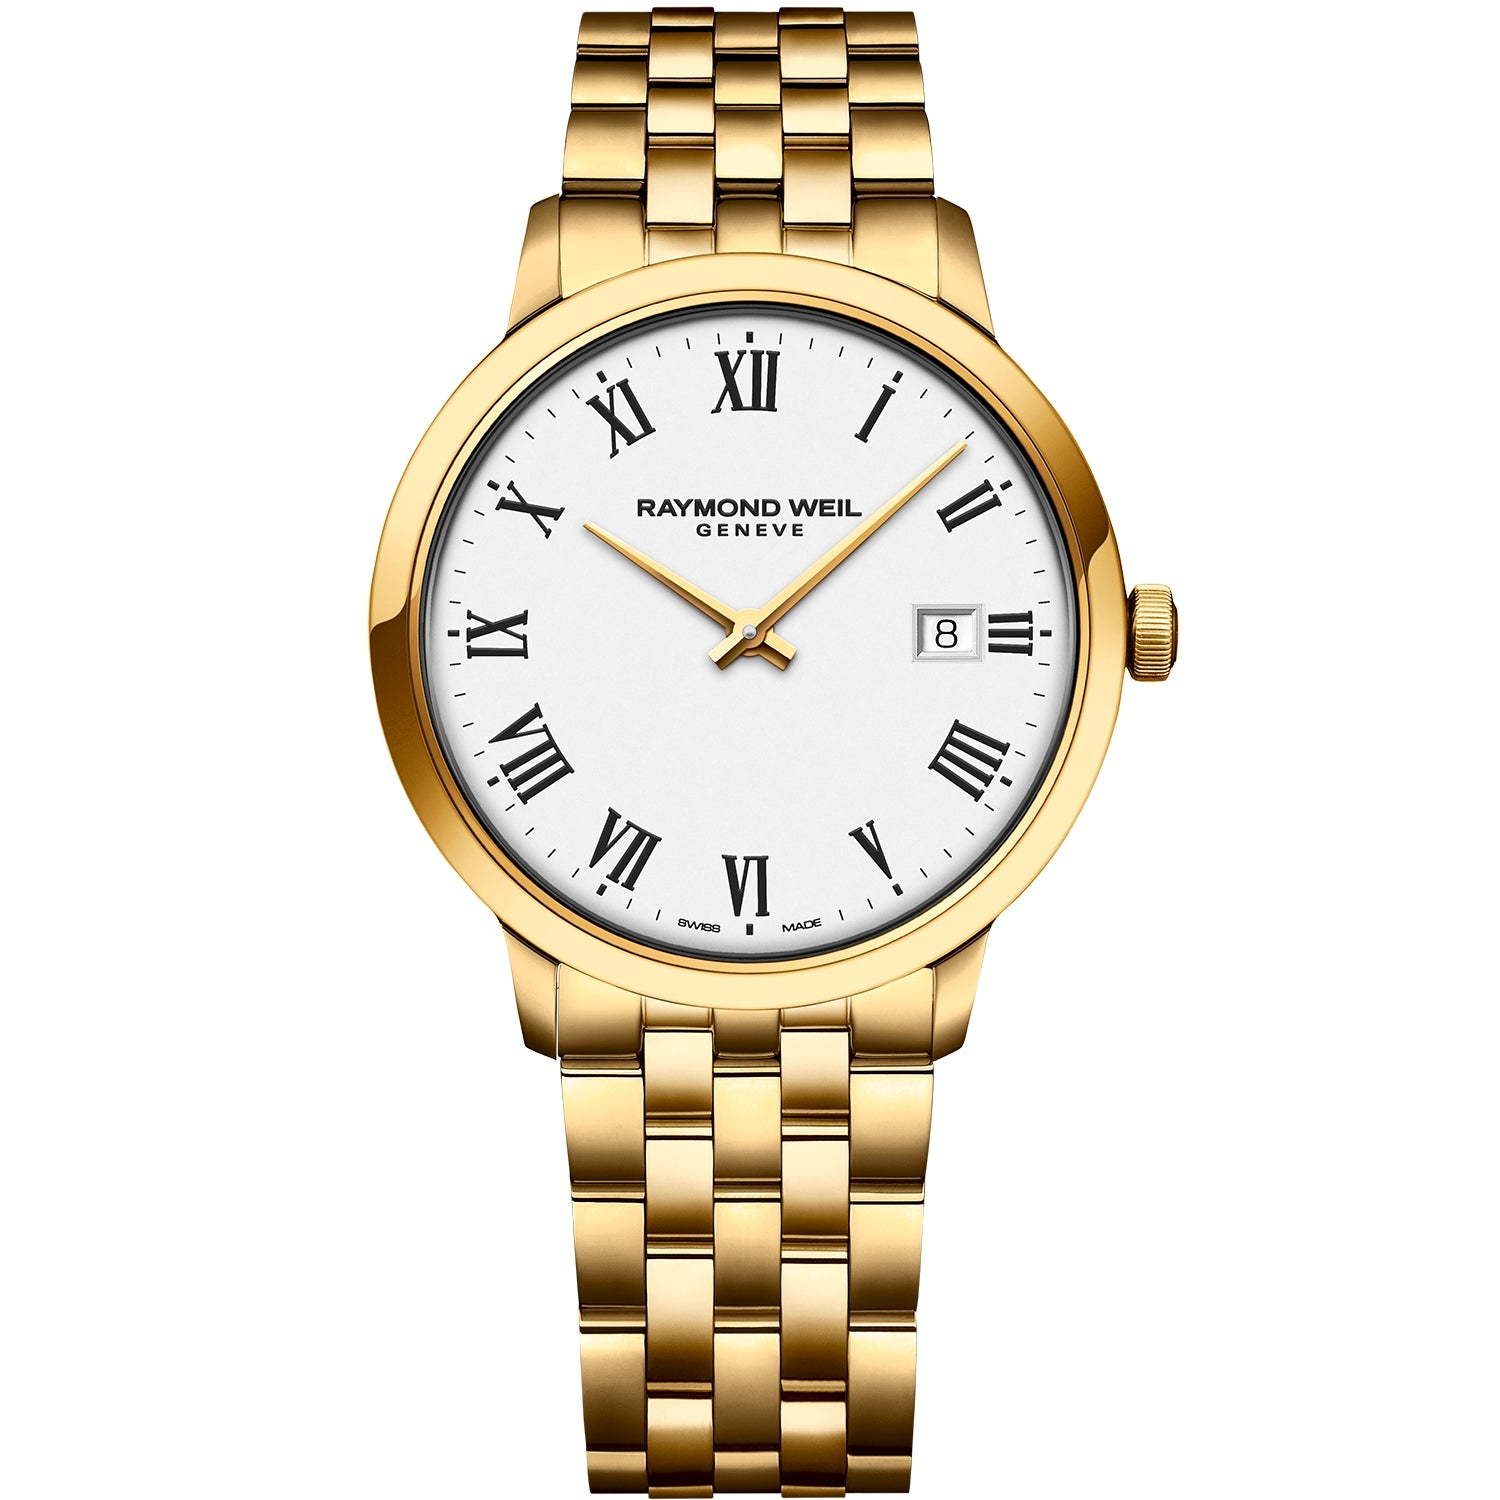 Toccata Men's Classic PVD Gold White Dial Quartz Watch 5485-P-00300